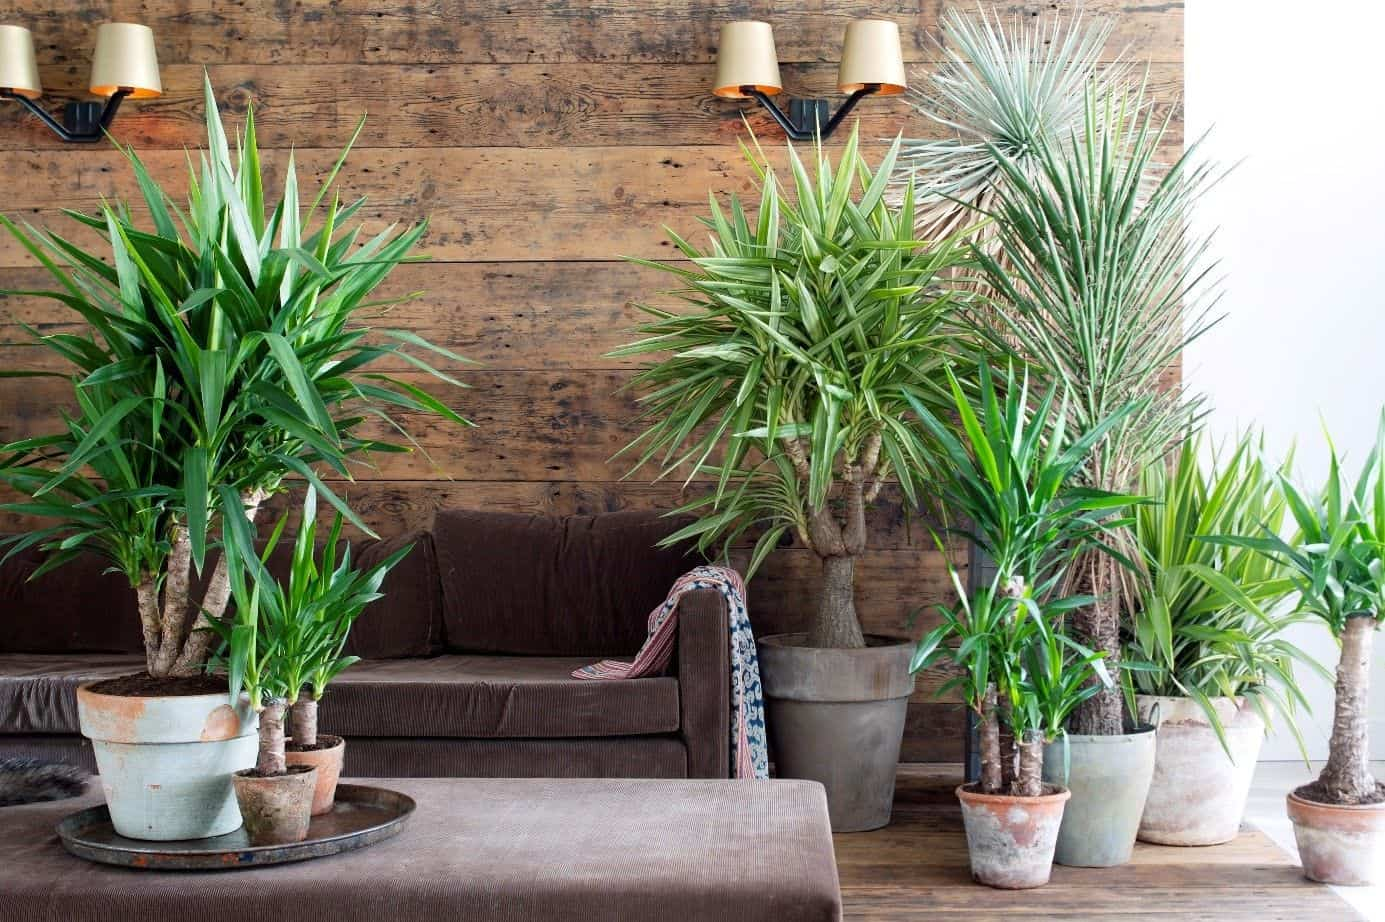 8 Best Large House Plants to Use for Décor. Yucca plants in the contemporary styled interior with wooden trimmed wall